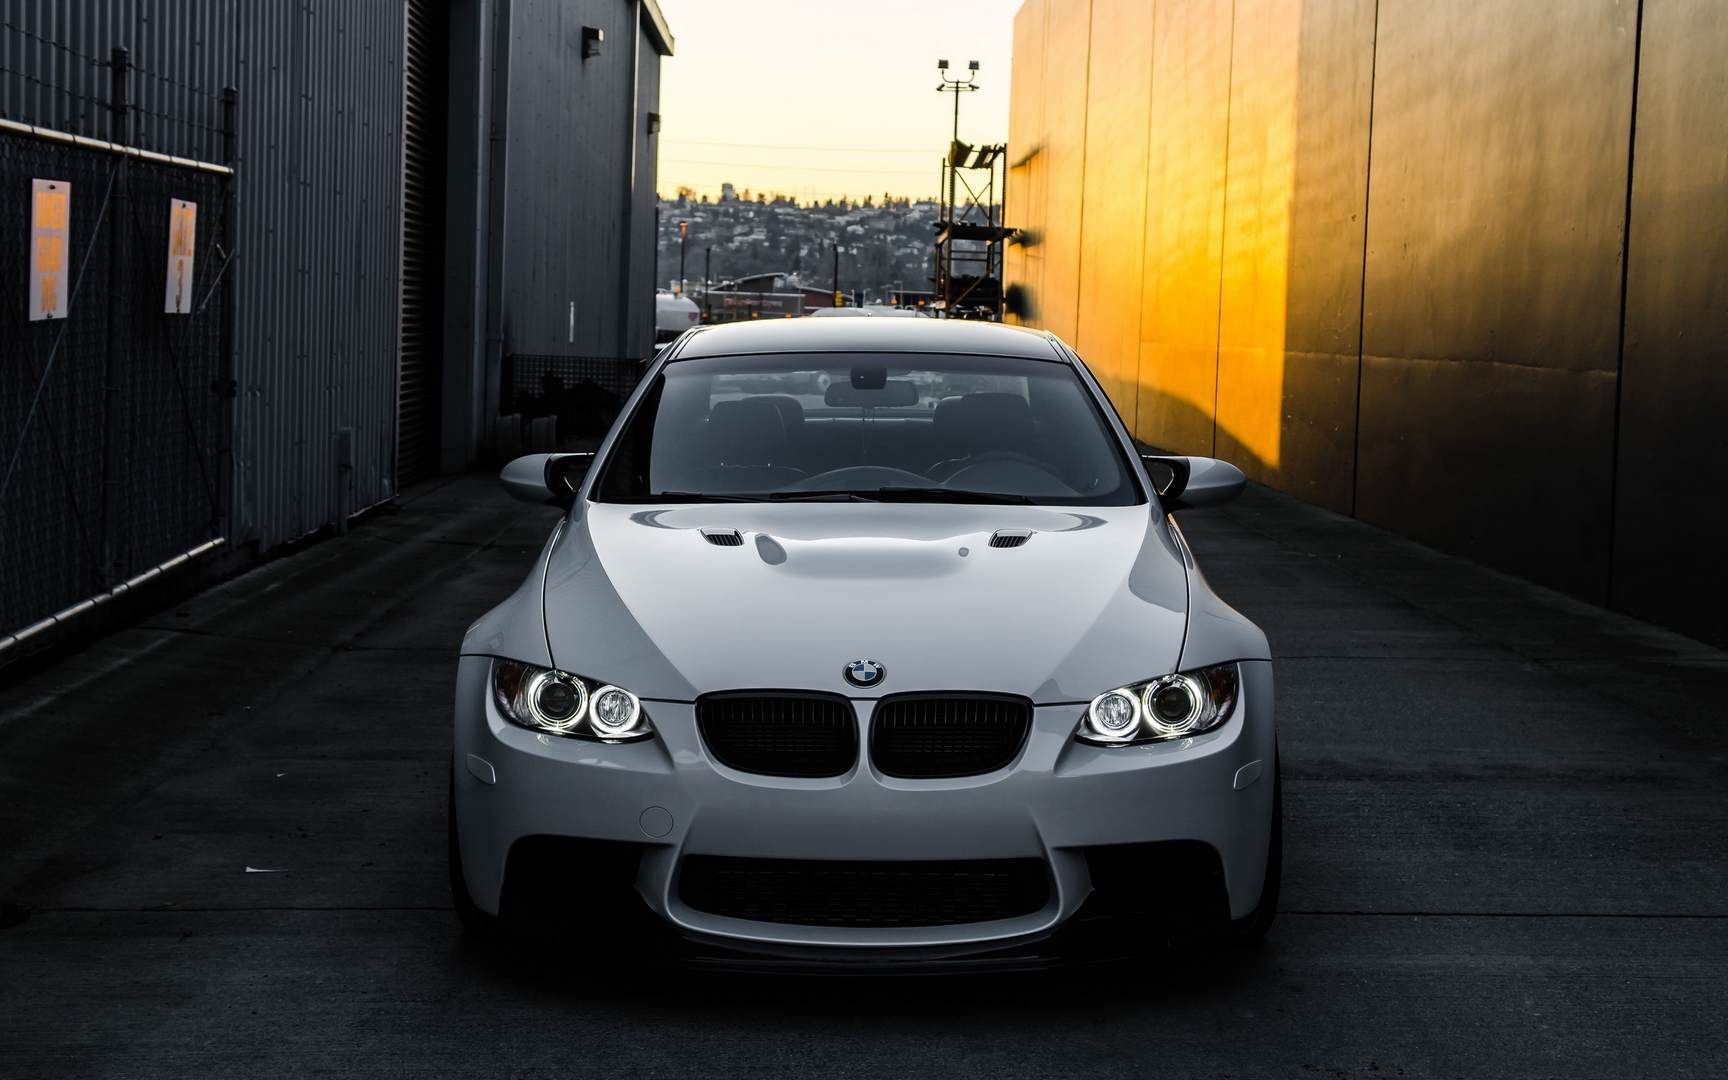 Bmw E92 M3 Bmw Wallpapers Bmw M3 Wallpaper Bmw M3